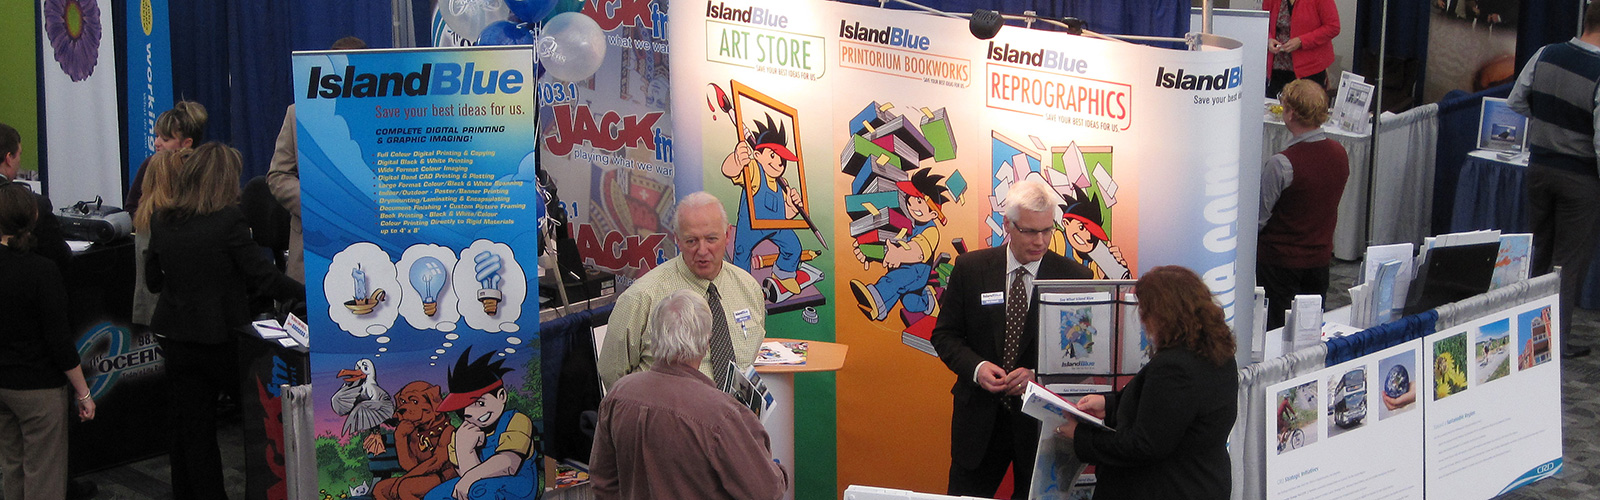 Island blue digital print tradeshow displays malvernweather Gallery